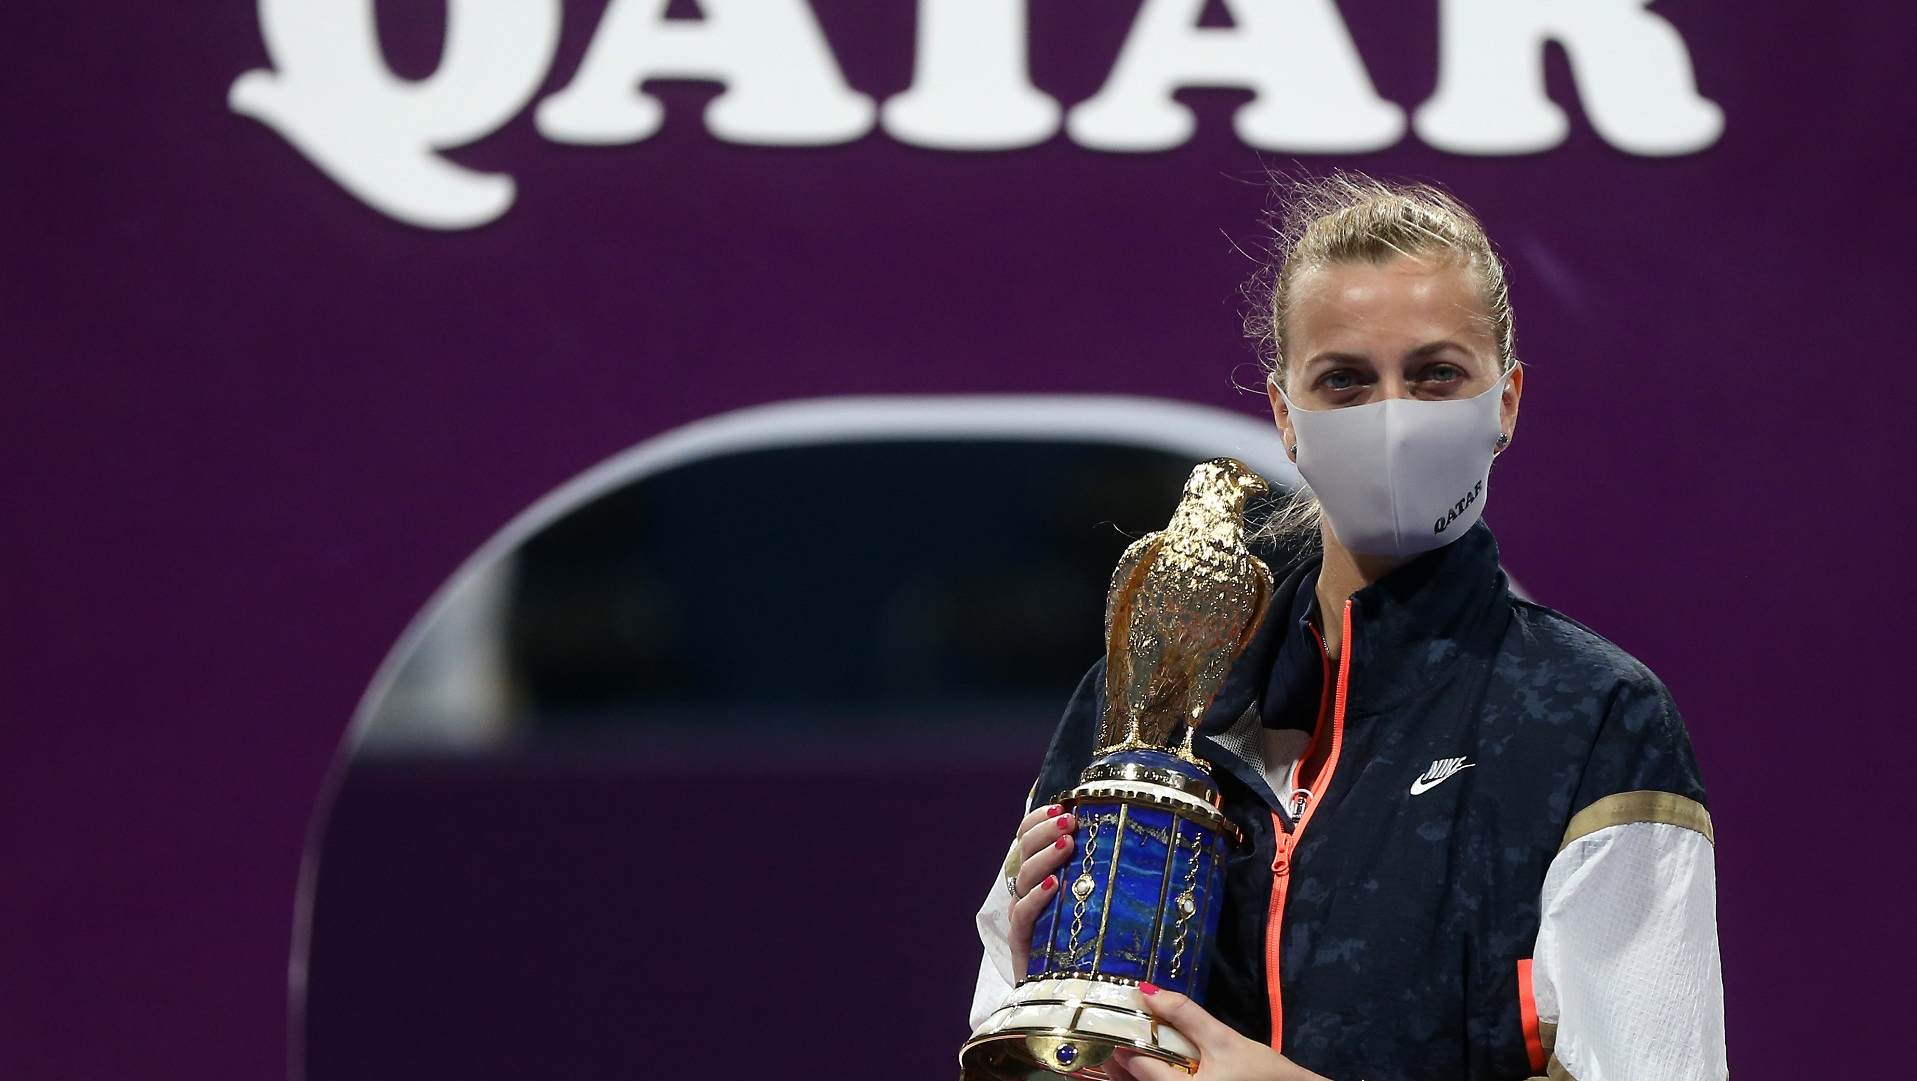 Petra Kvitova claimed her second Qatar Open title in her third final in four years with a 6-2 6-1 win over Garbine Muguruza.